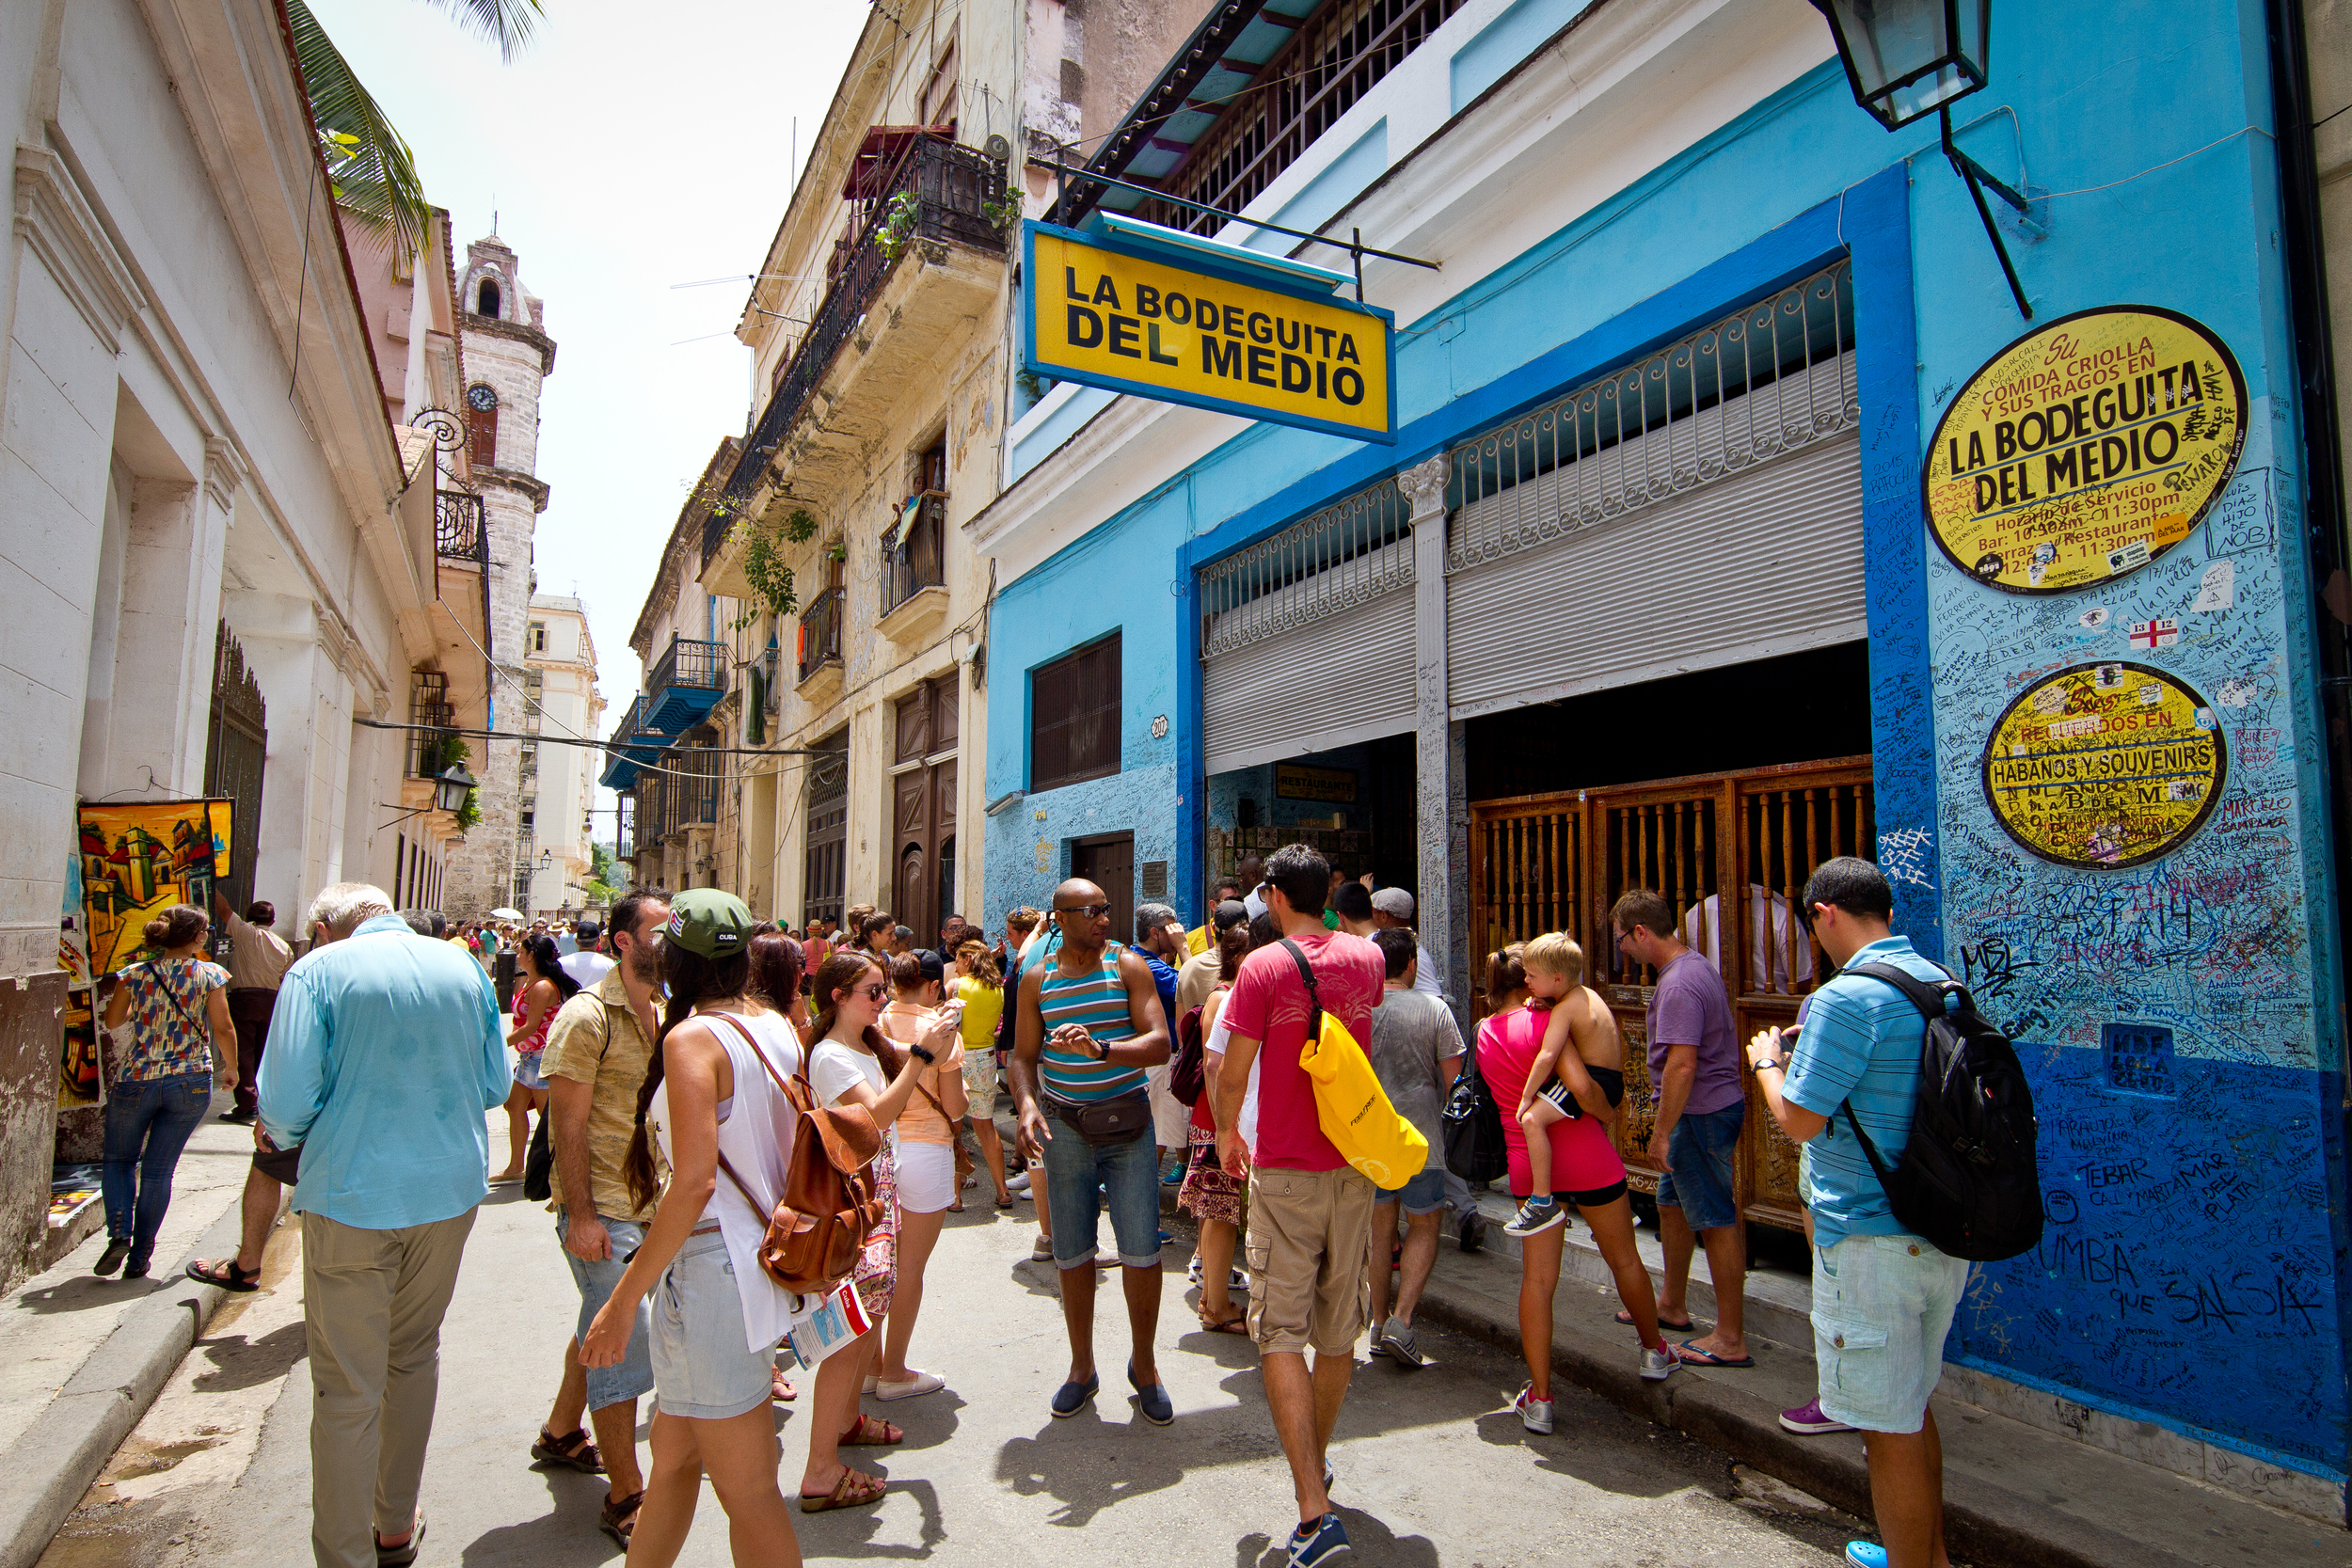 Tourists outside an old Hemingway haunt, Havana, Cuba